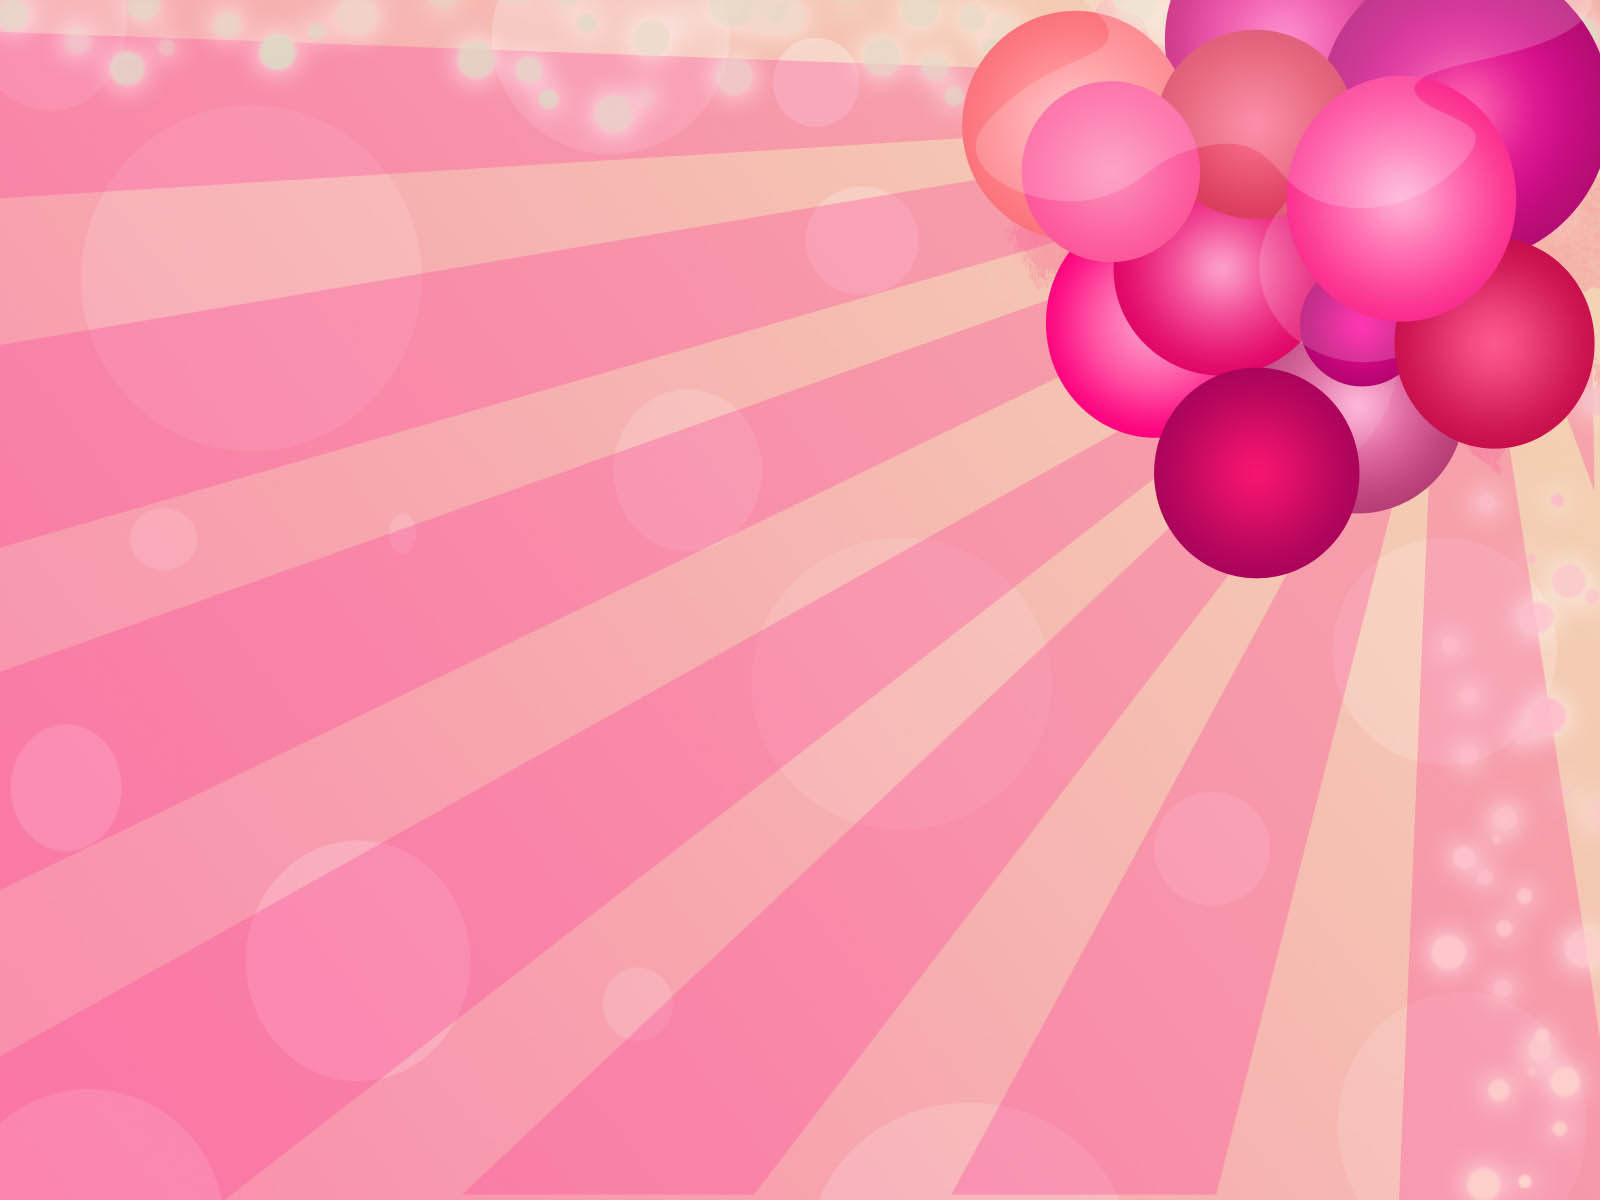 Abstract Pink Wallpapers ~ Desktop Wallpaper